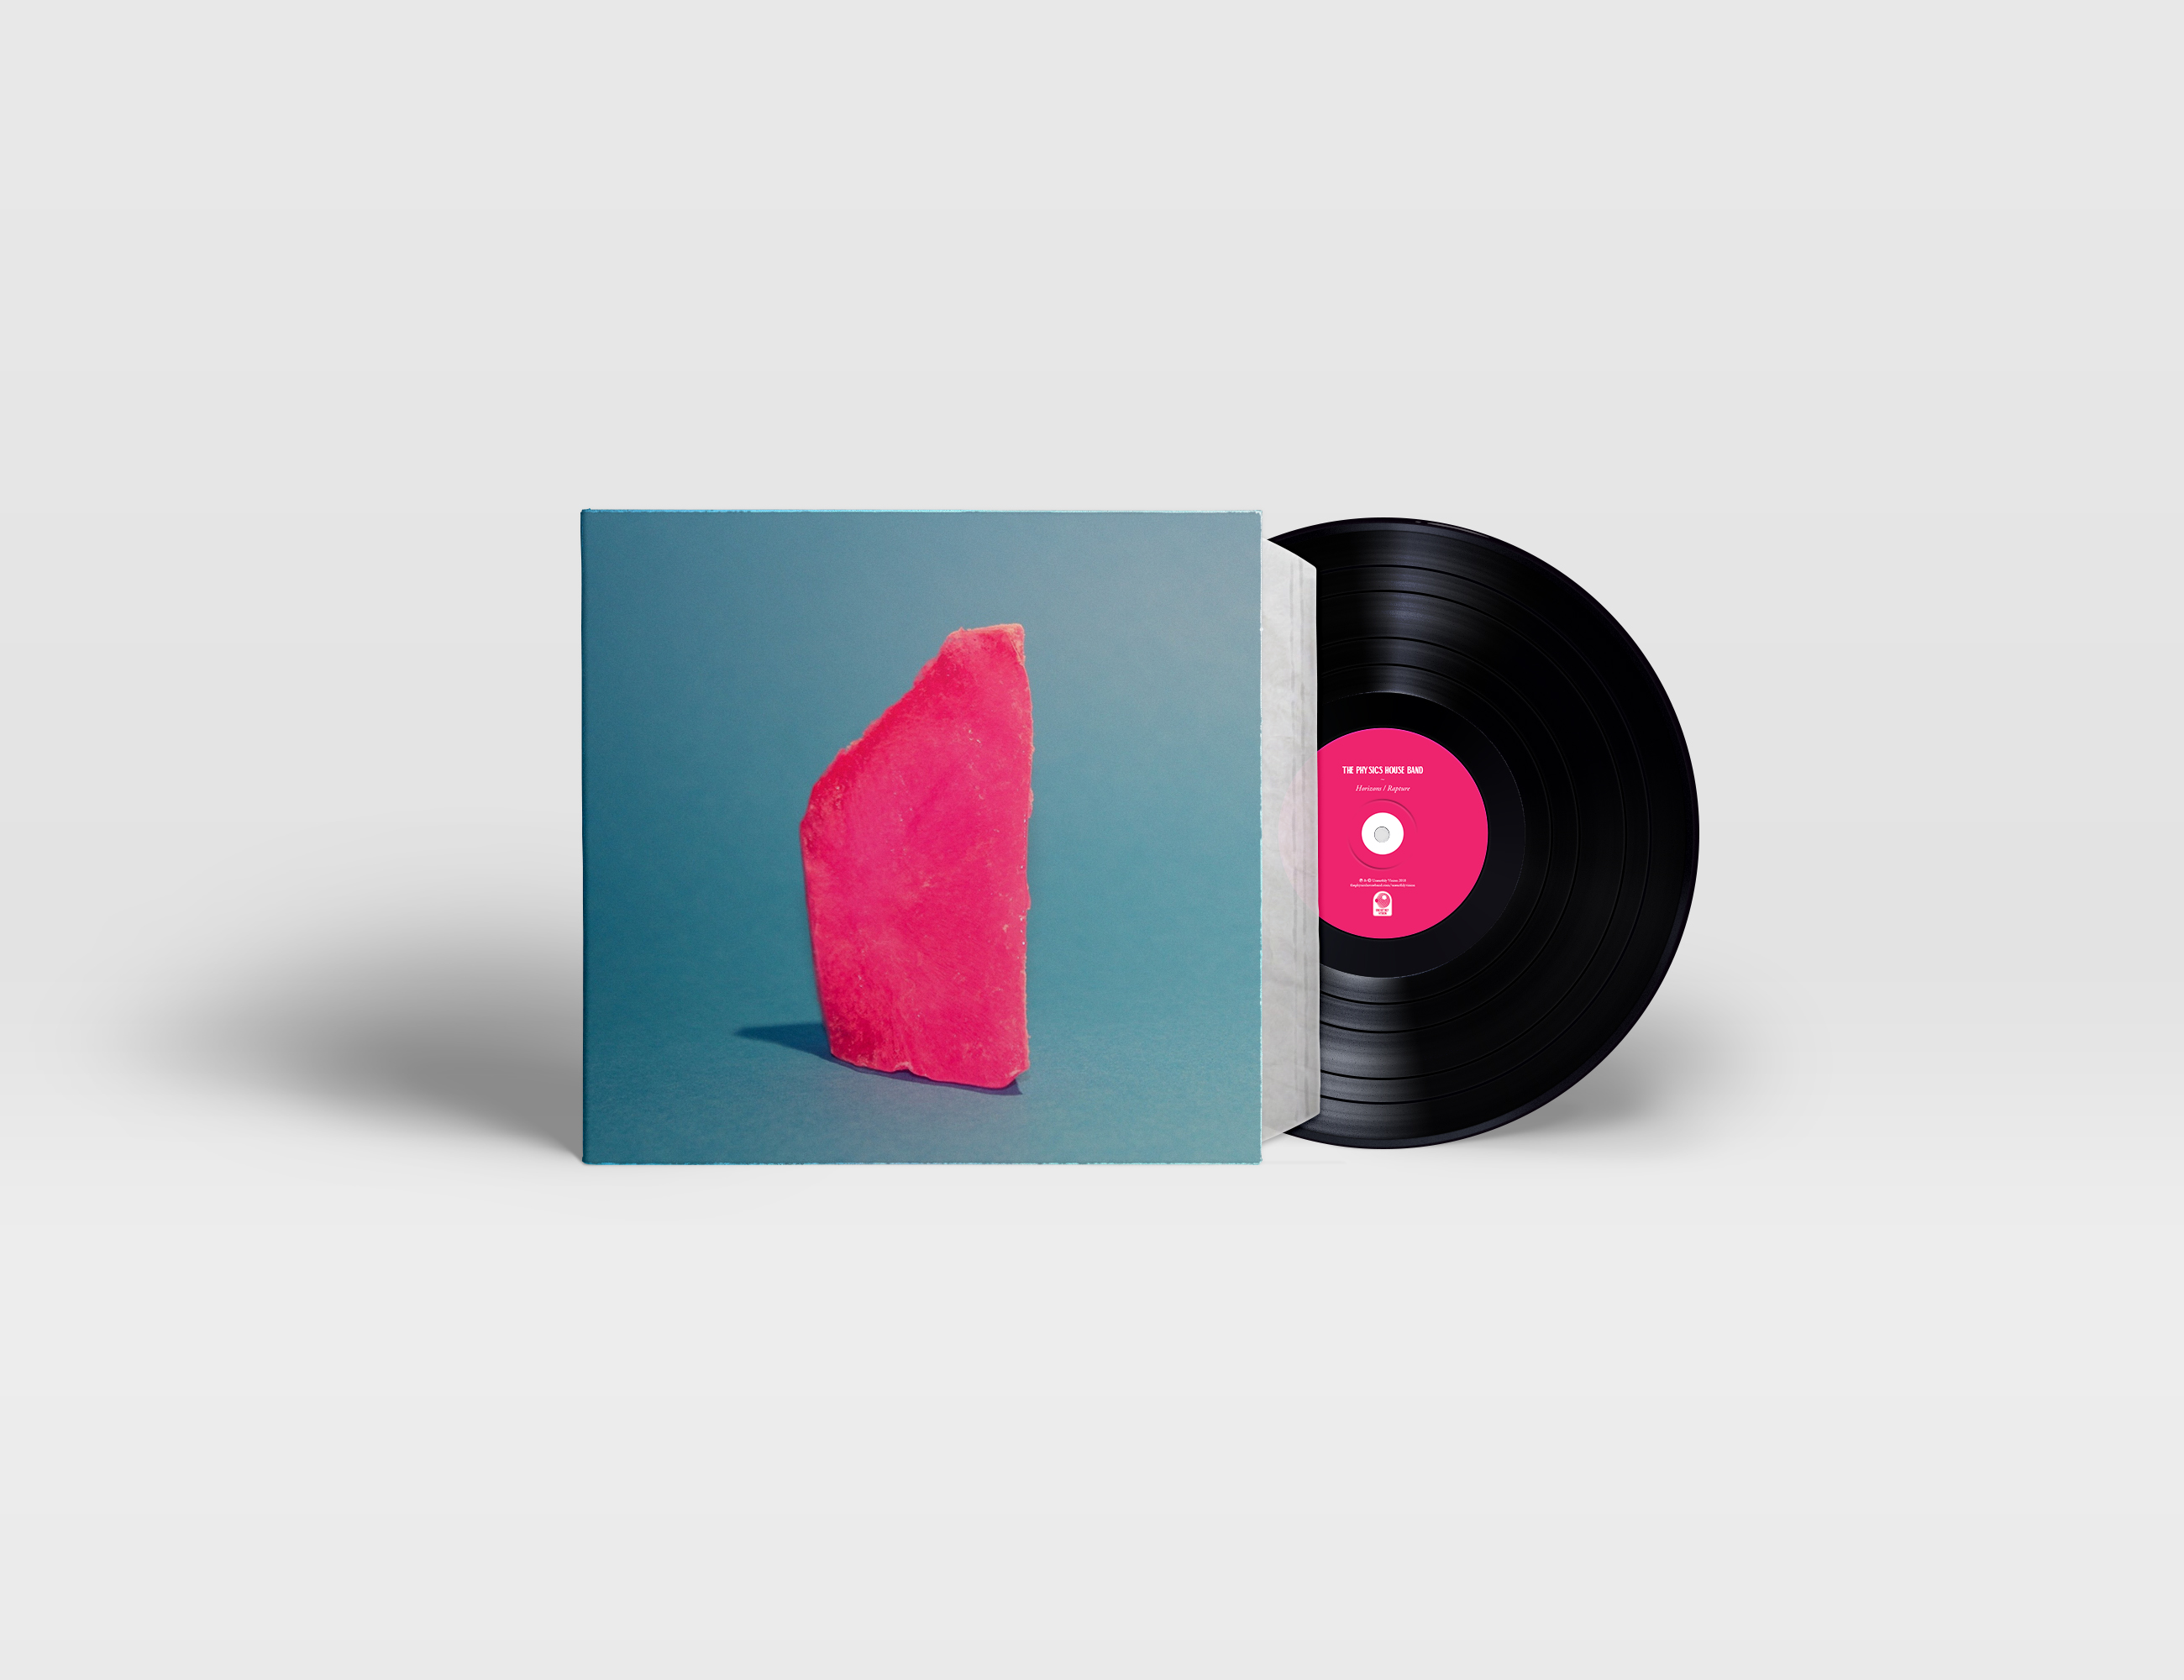 The Physics House Band - 'Horizons / Rapture' (Black Vinyl) - Unearthly Vision